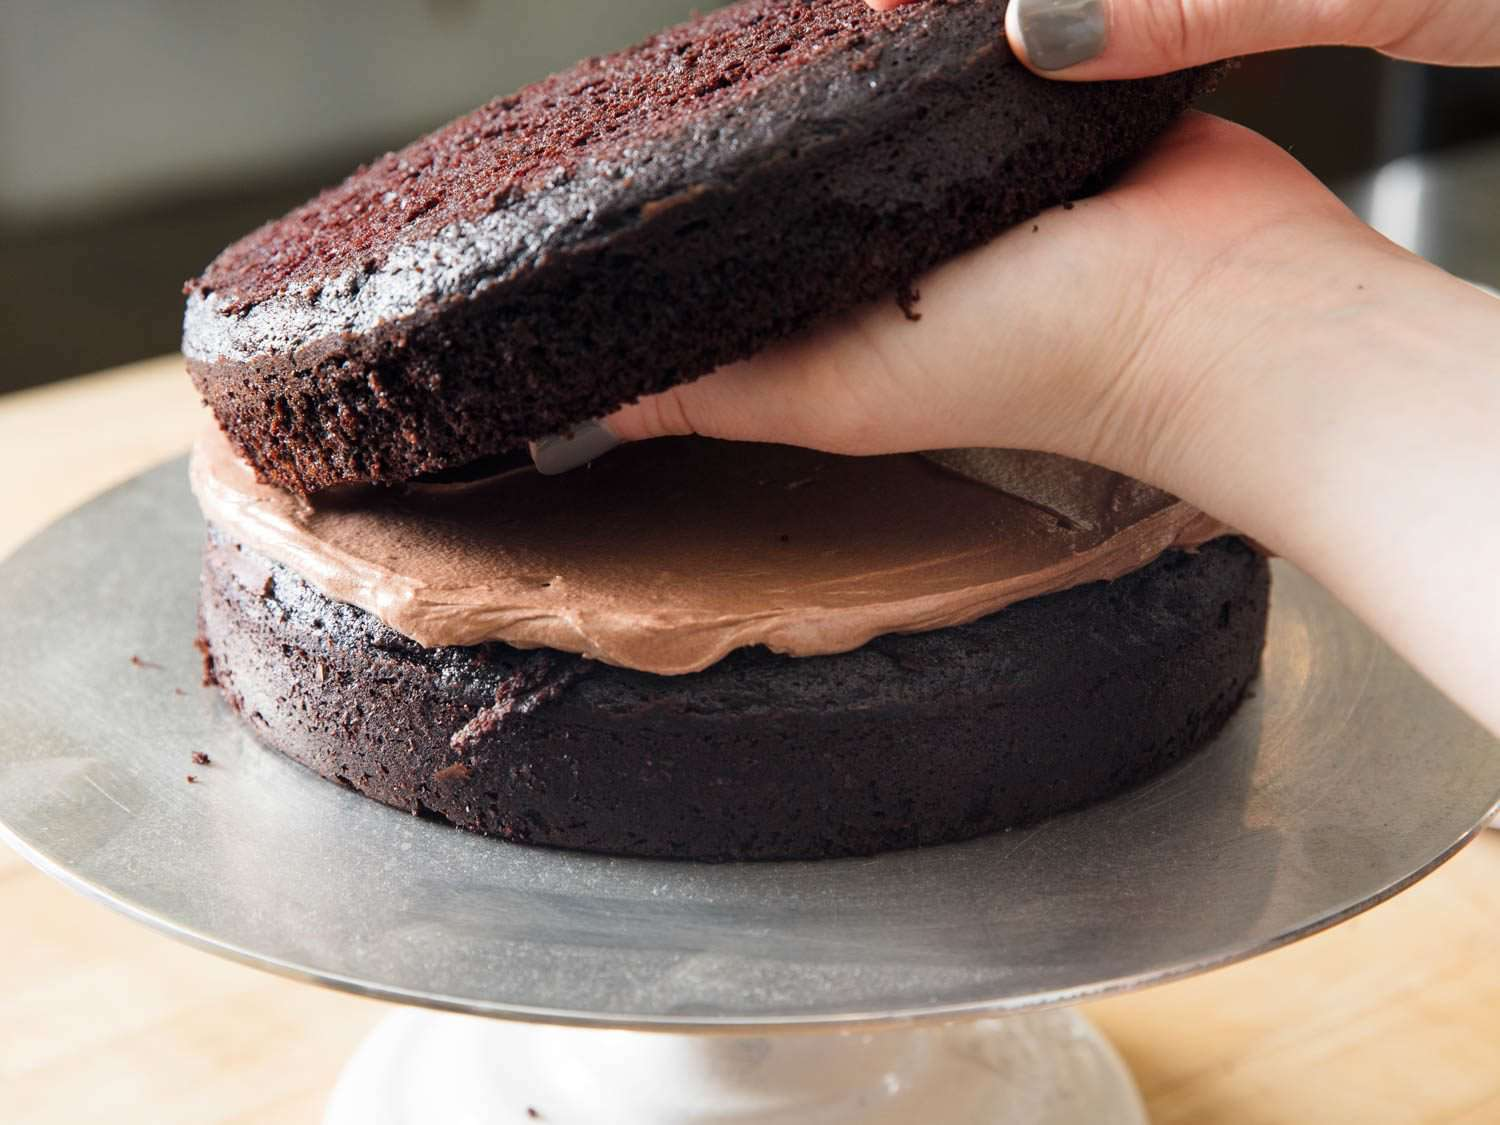 Laying down second layer of Devil's food cake on top of chocolate Swiss buttercream.